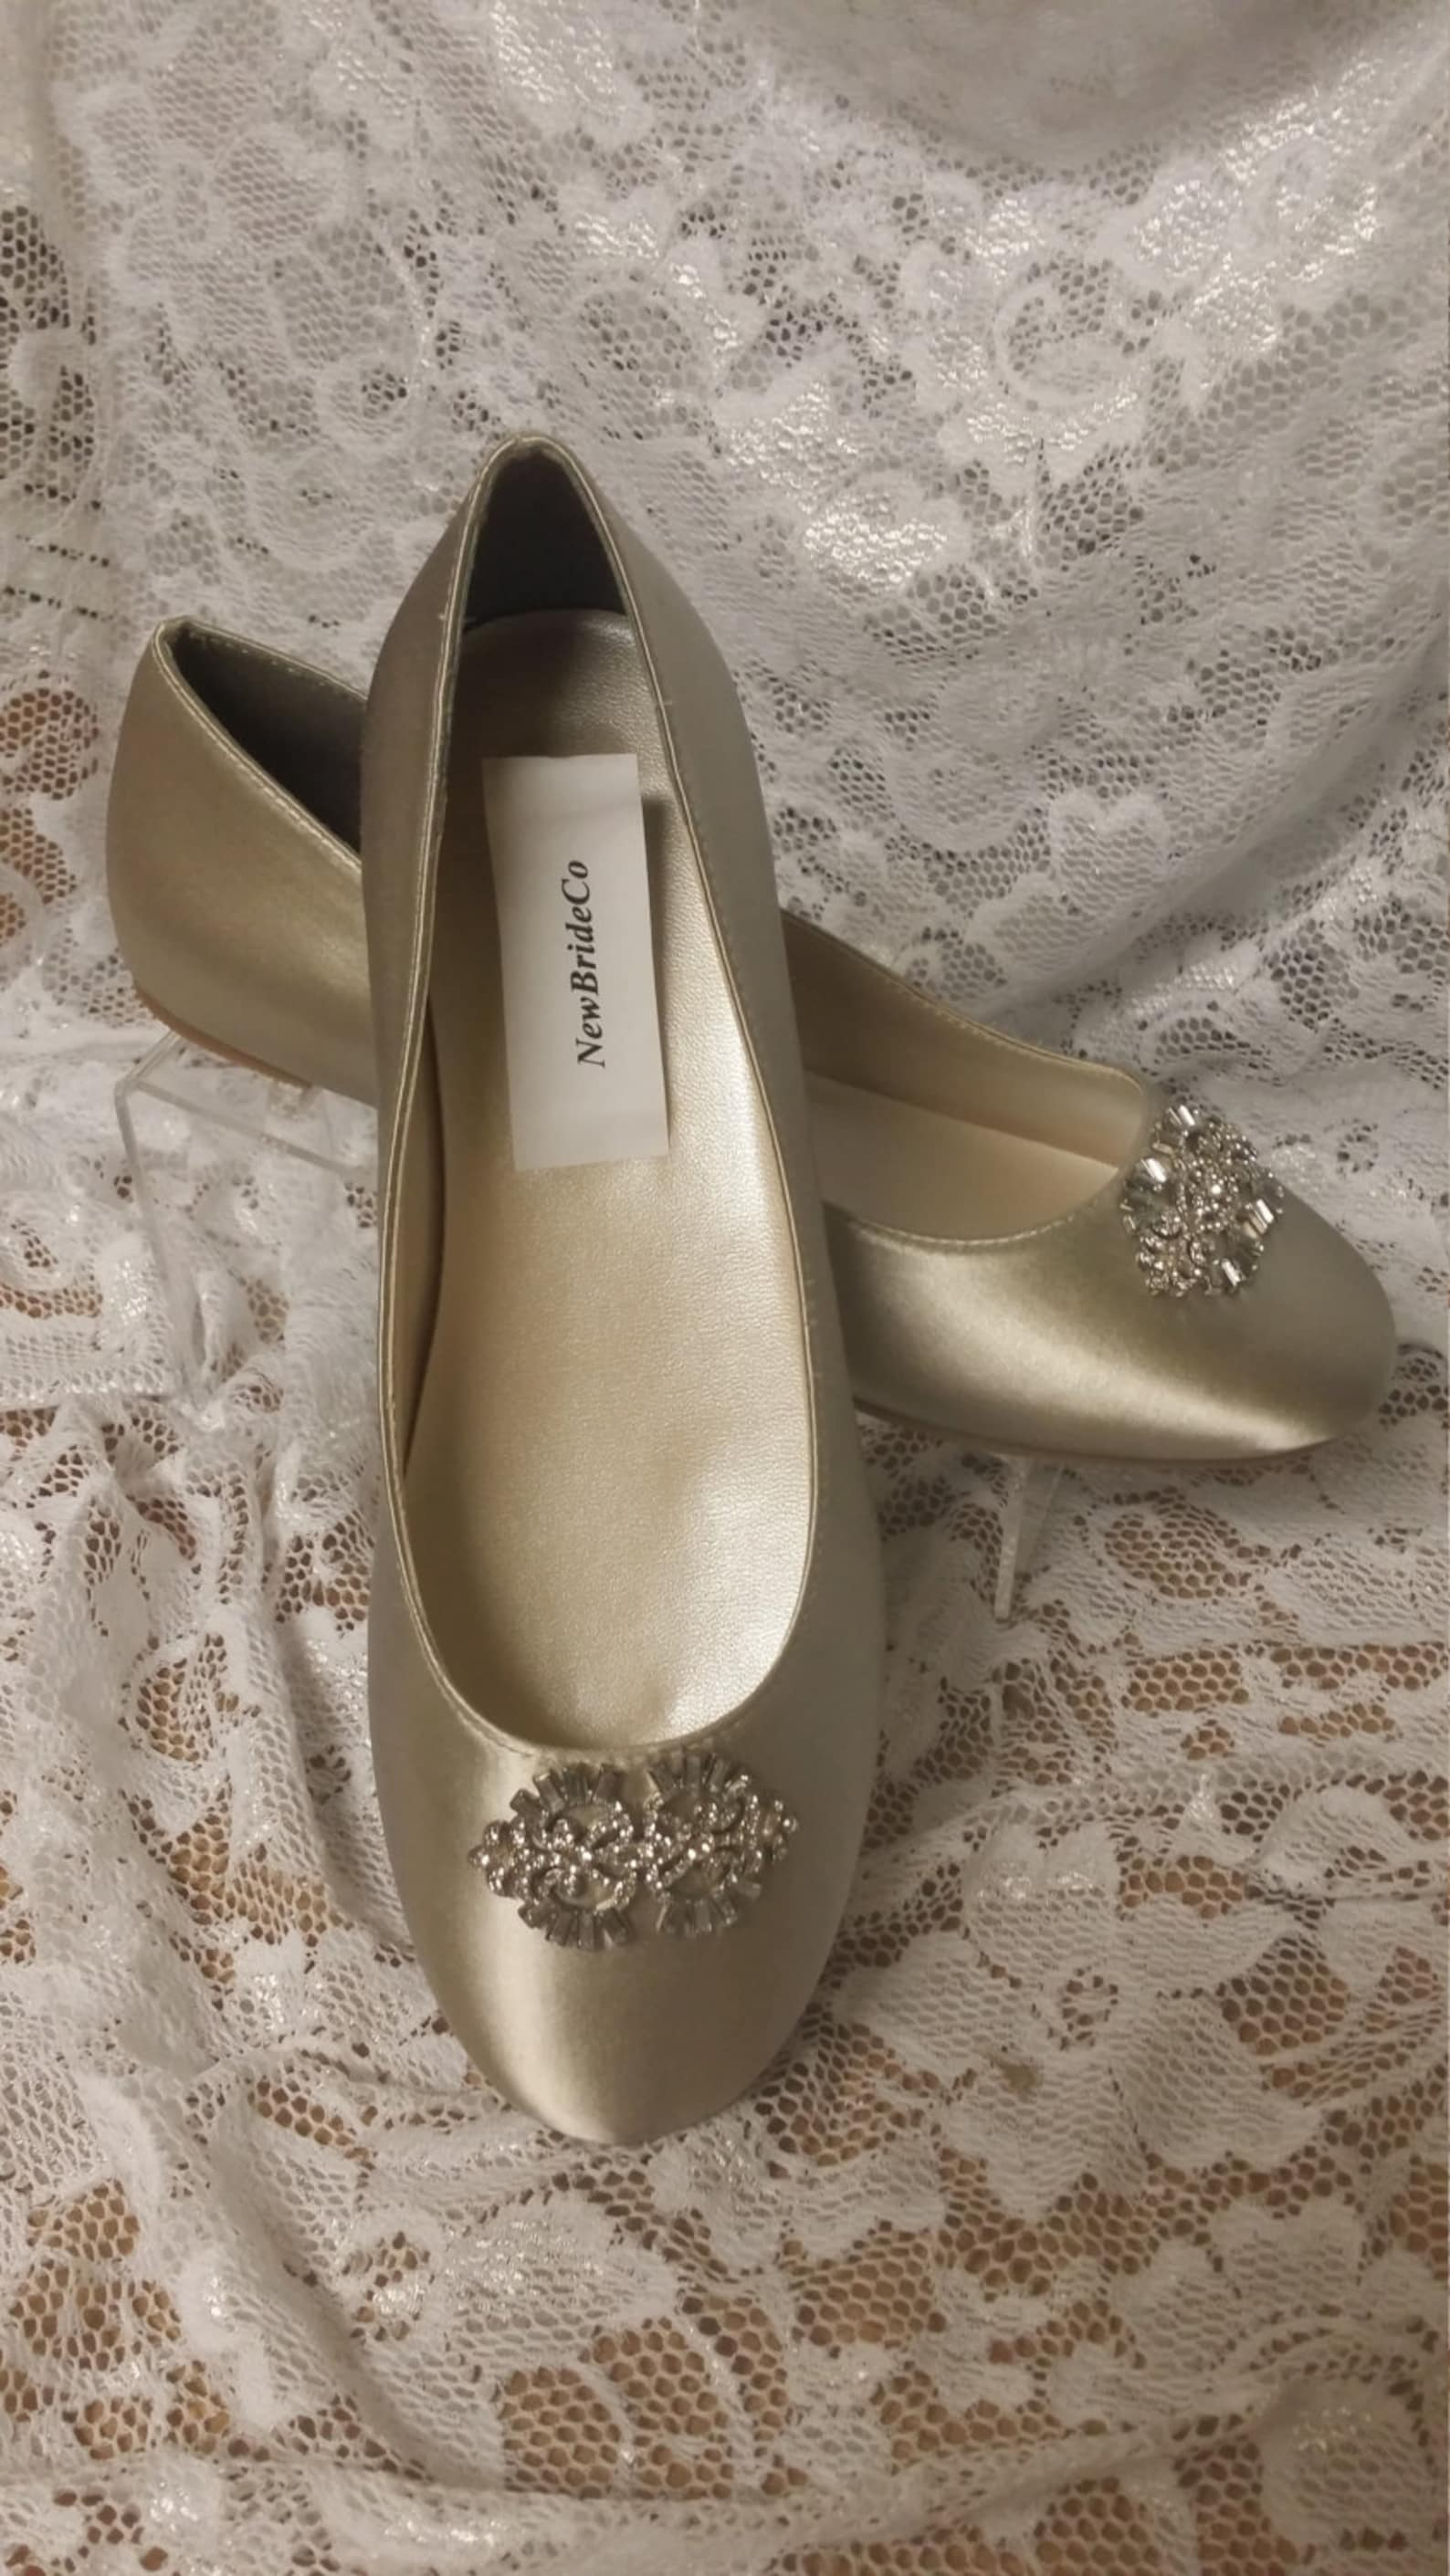 size 7 ready to ship flat shoes nude color with brooch - neutral nude color satin flats,non slip satin ballet style slipper flat